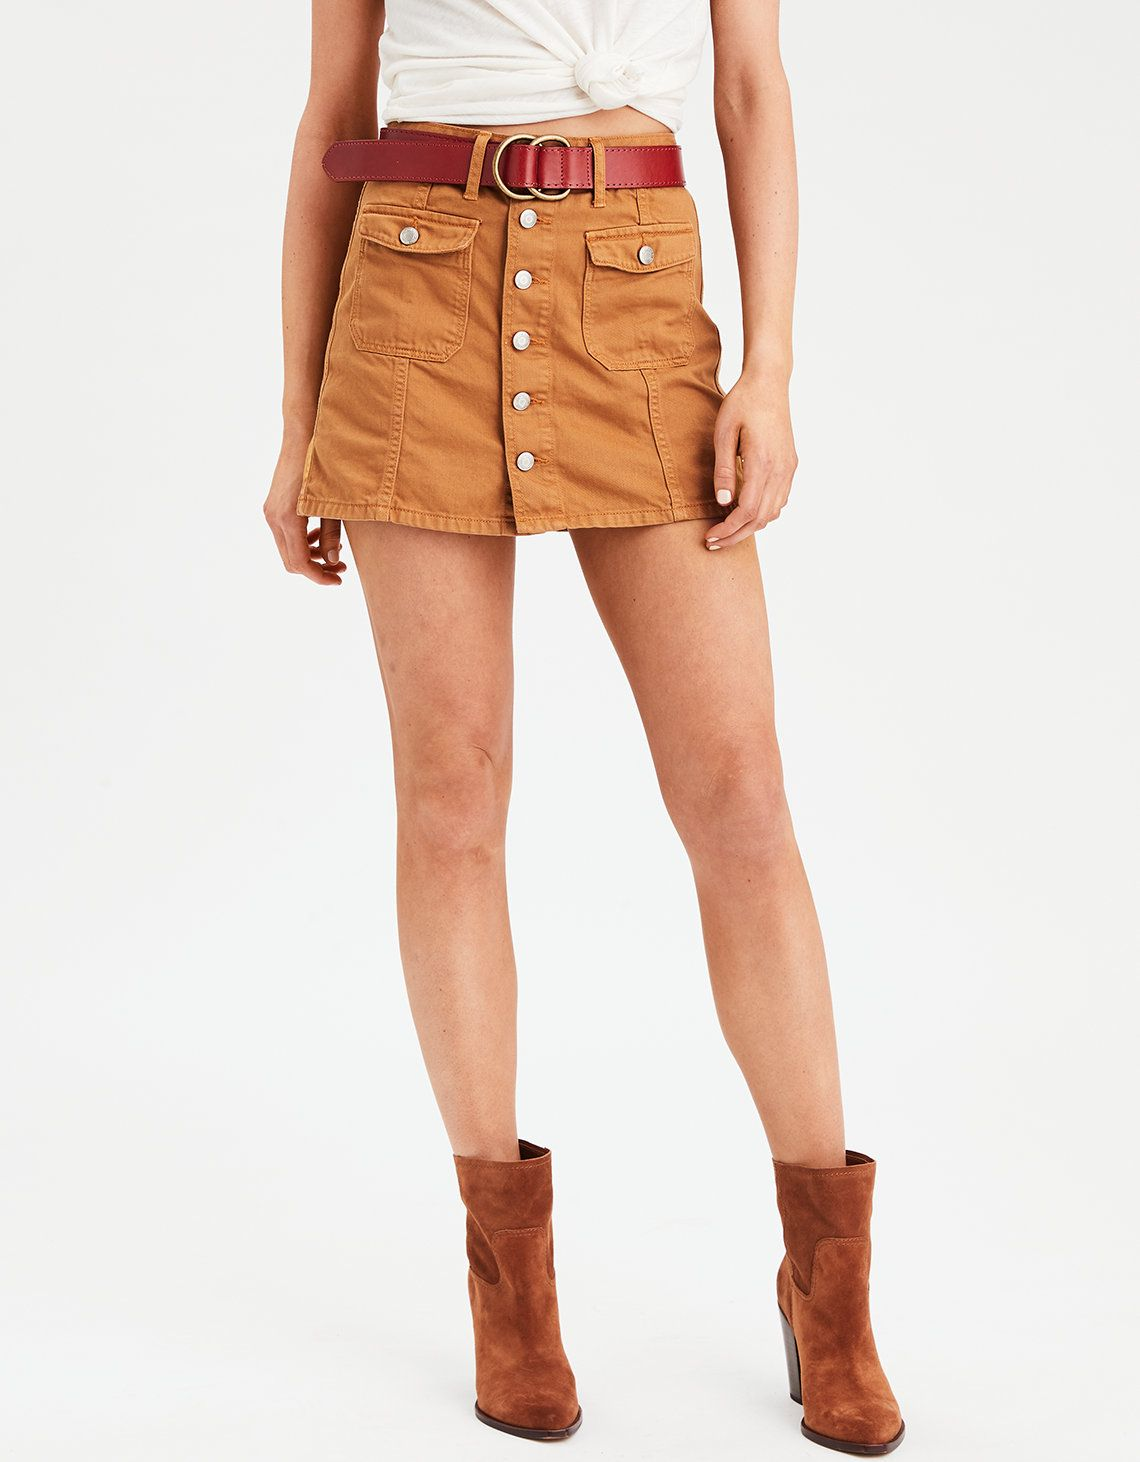 b23a36a5e6 Product Image Womens Clearance, Mens Outfitters, American Eagle Outfitters,  Denim Skirt, Mustard